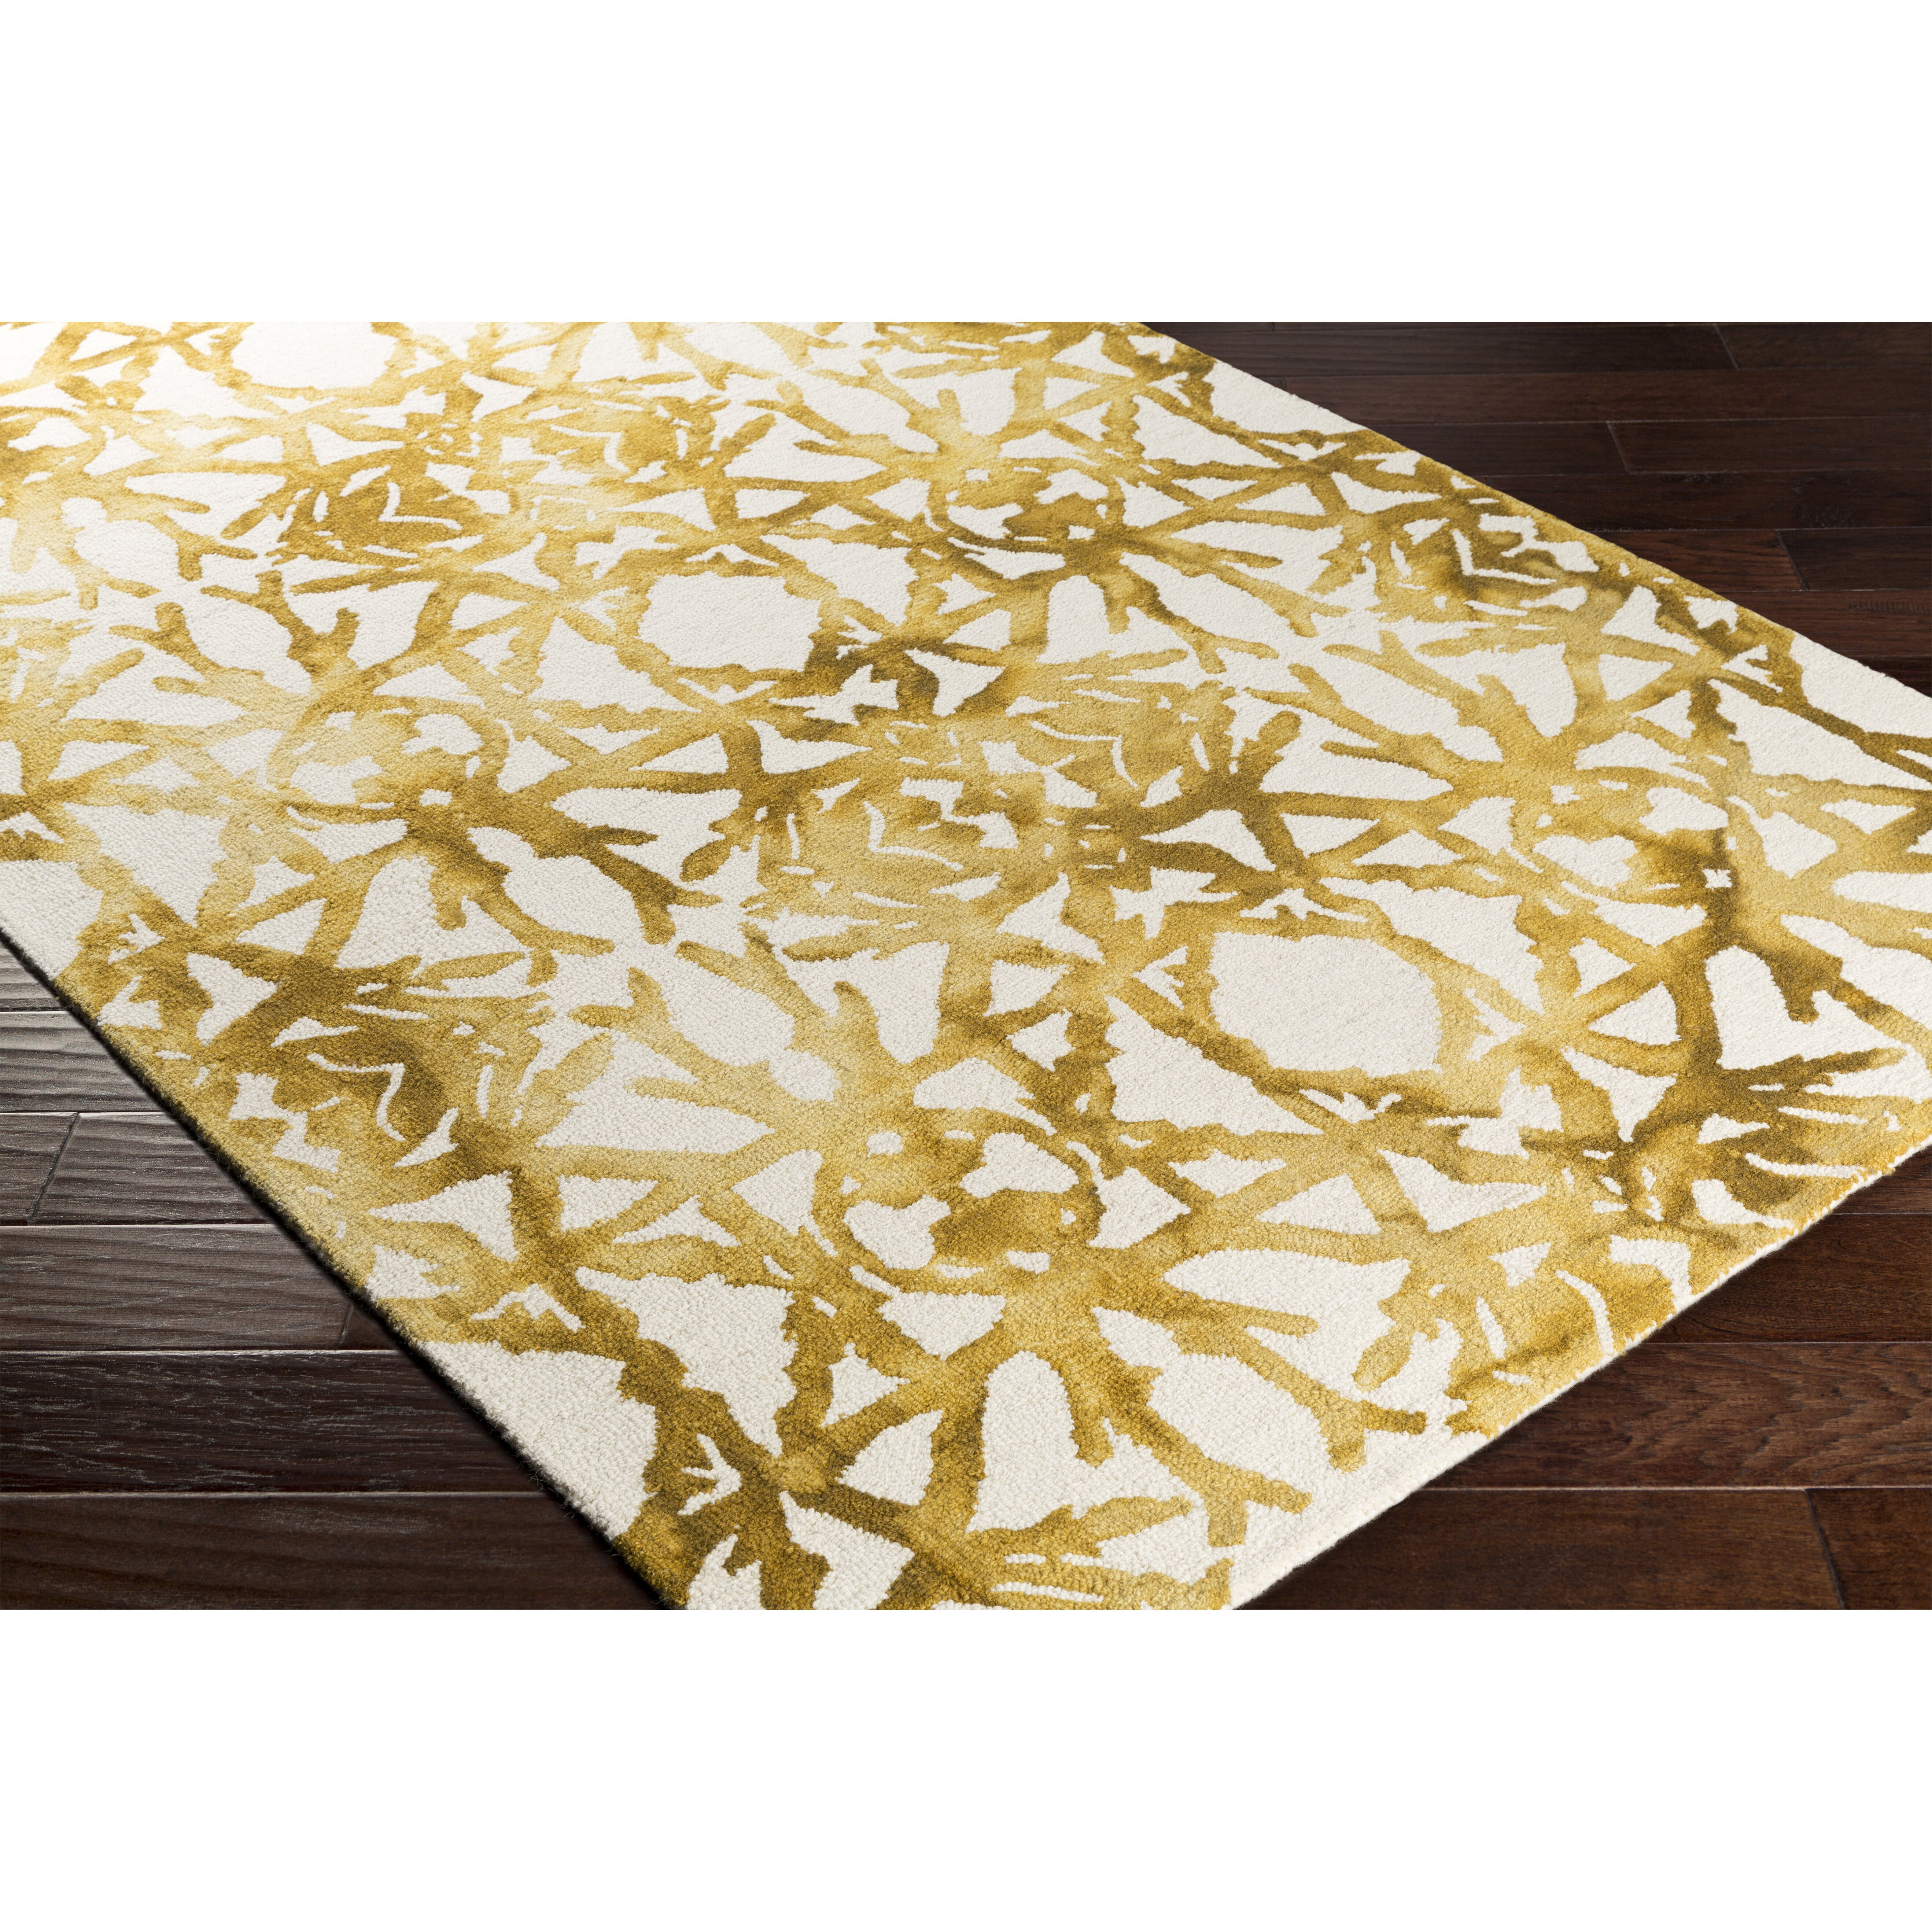 Artistic Weavers Organic Avery Hand Tufted Gold Off White